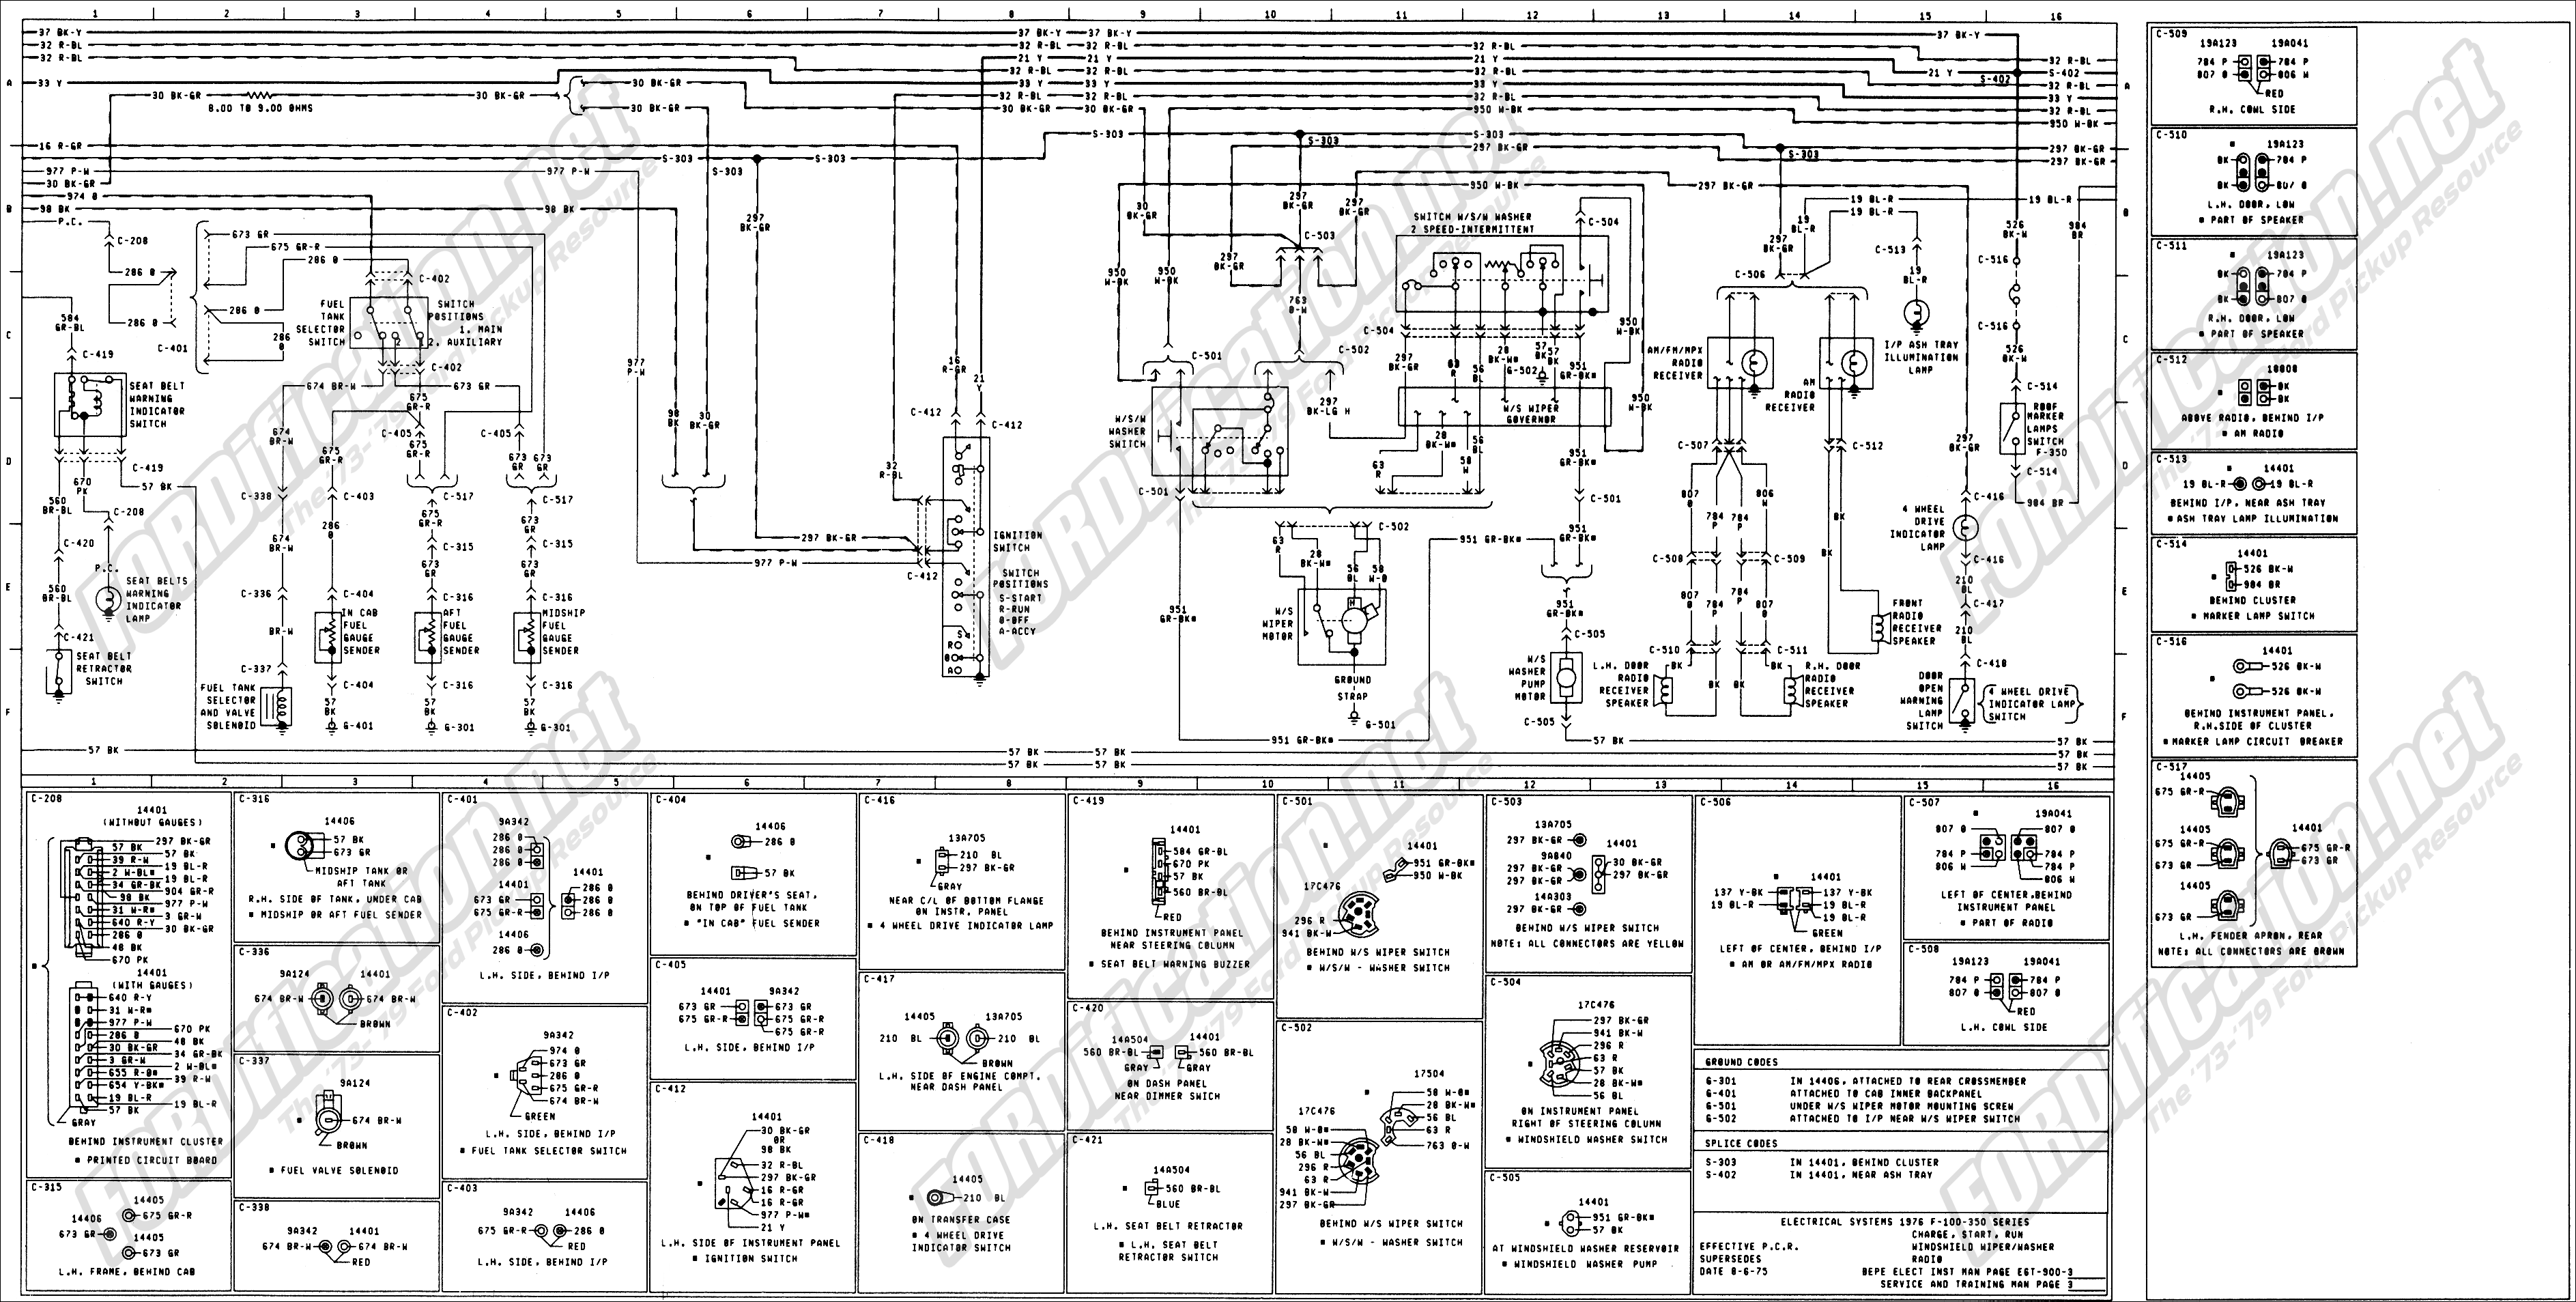 f250 ford wiring diagram wiring diagram for you all u2022 rh onlinetuner co 2010 f250 5.4 fuse box diagram 2010 f250 gas fuse box diagram